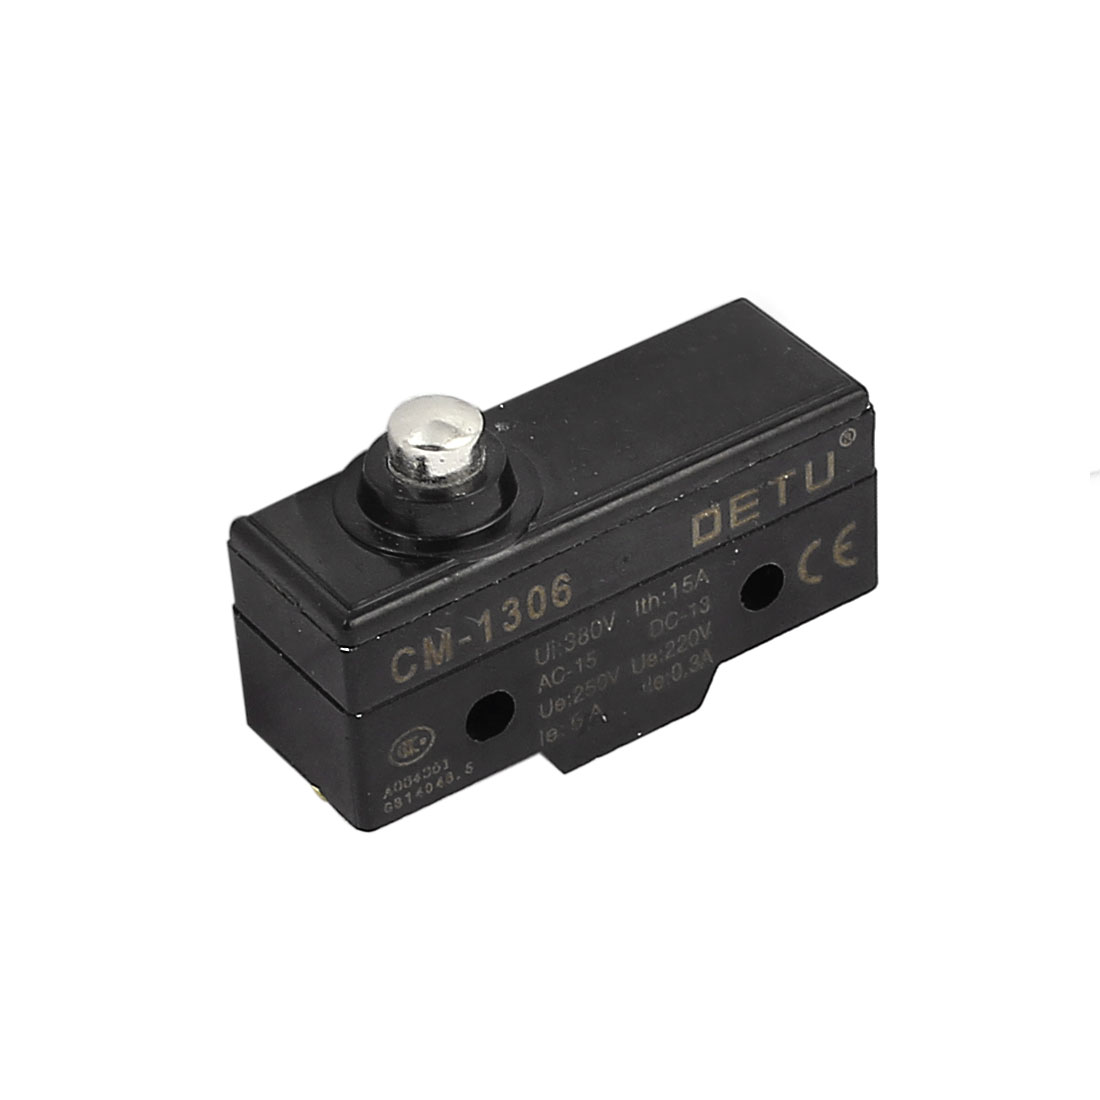 CM-1306 SPDT 3 Screw Terminal Momentary Push Plunger Micro Limit Switch